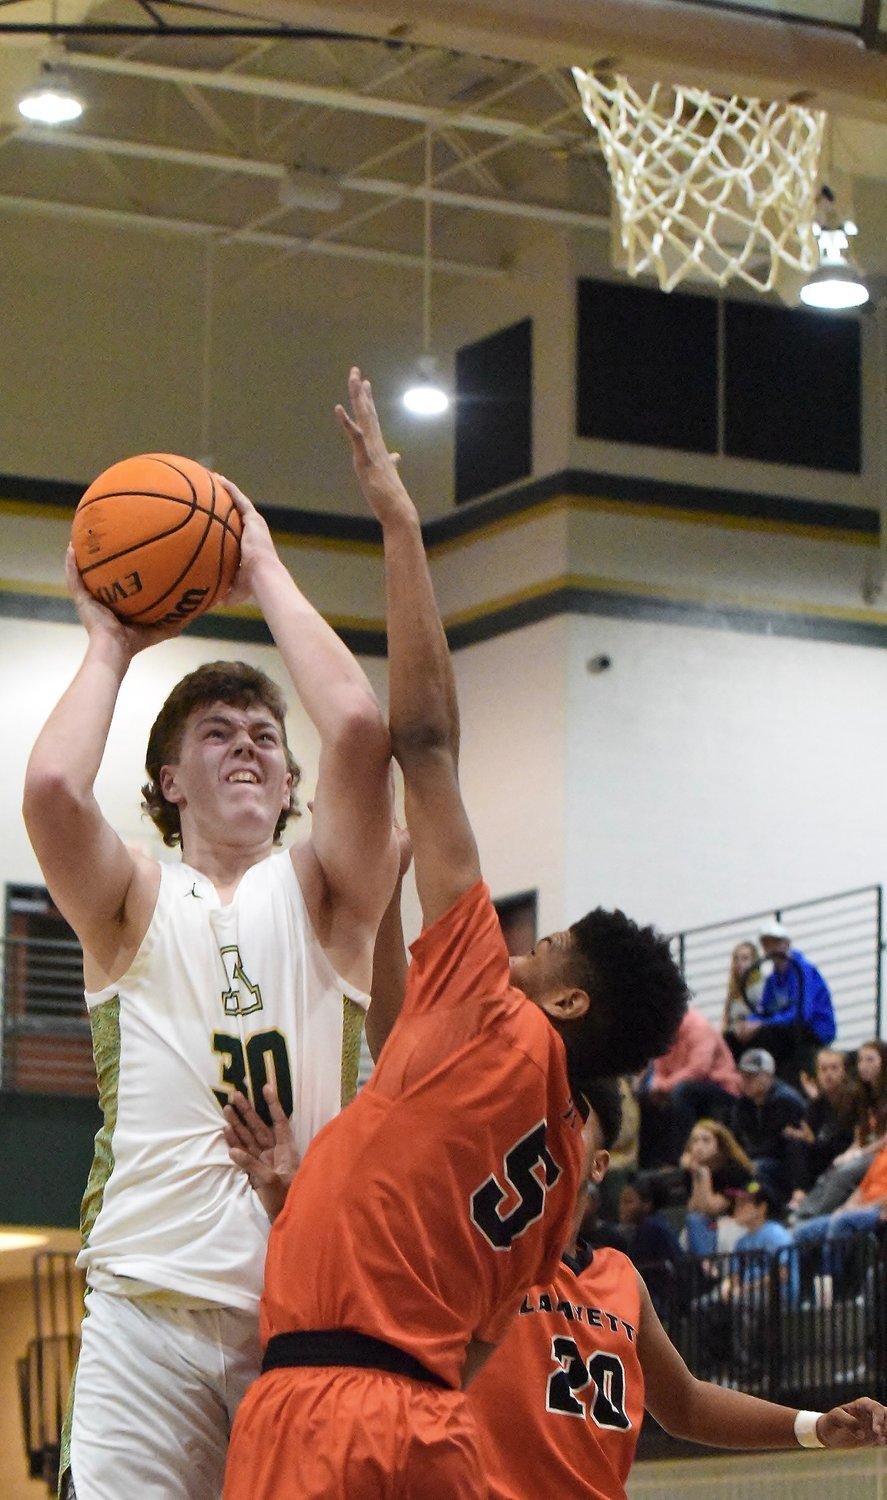 Adairsville senior Jaxon Welchel goes up for a shot against LaFayette in the semifinals of the AHS Tiger Christmas Clash Dec. 28, 2019, in Adairsville.